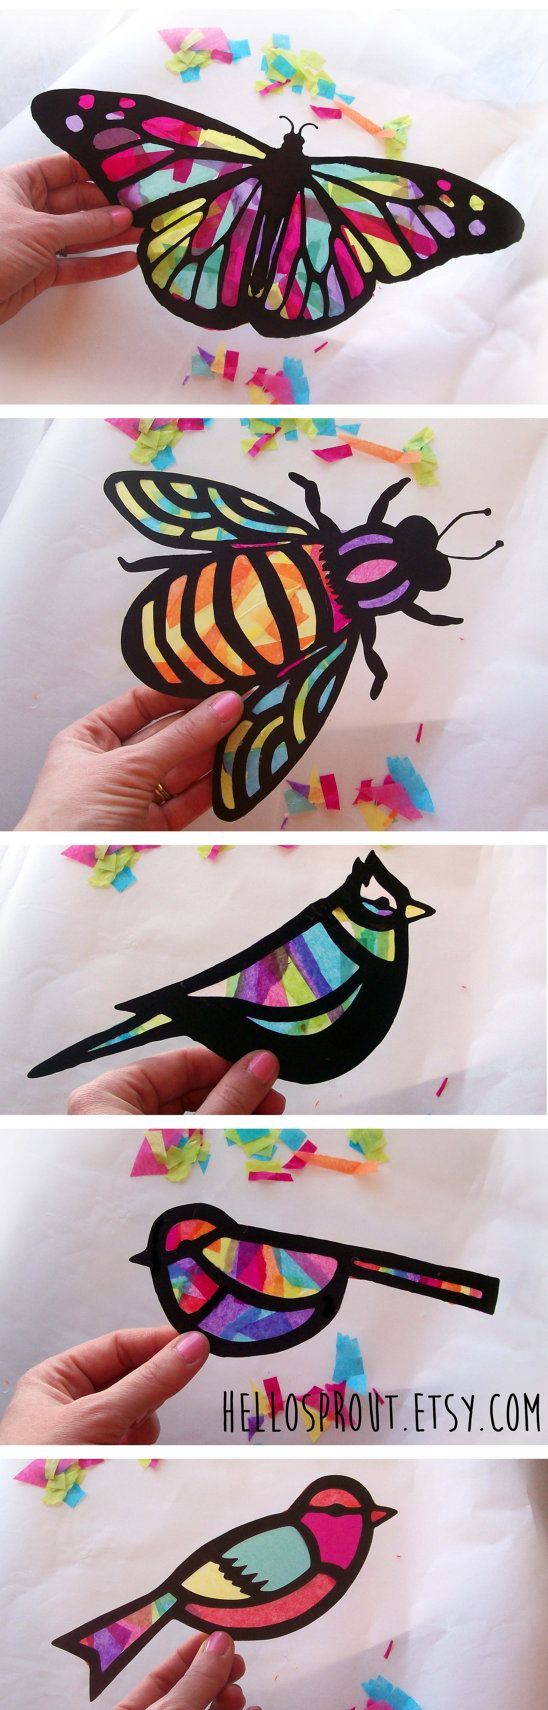 Kids Craft Butterfly Stained Glass Suncatcher Kit With Birds Bees Using Tissue Paper